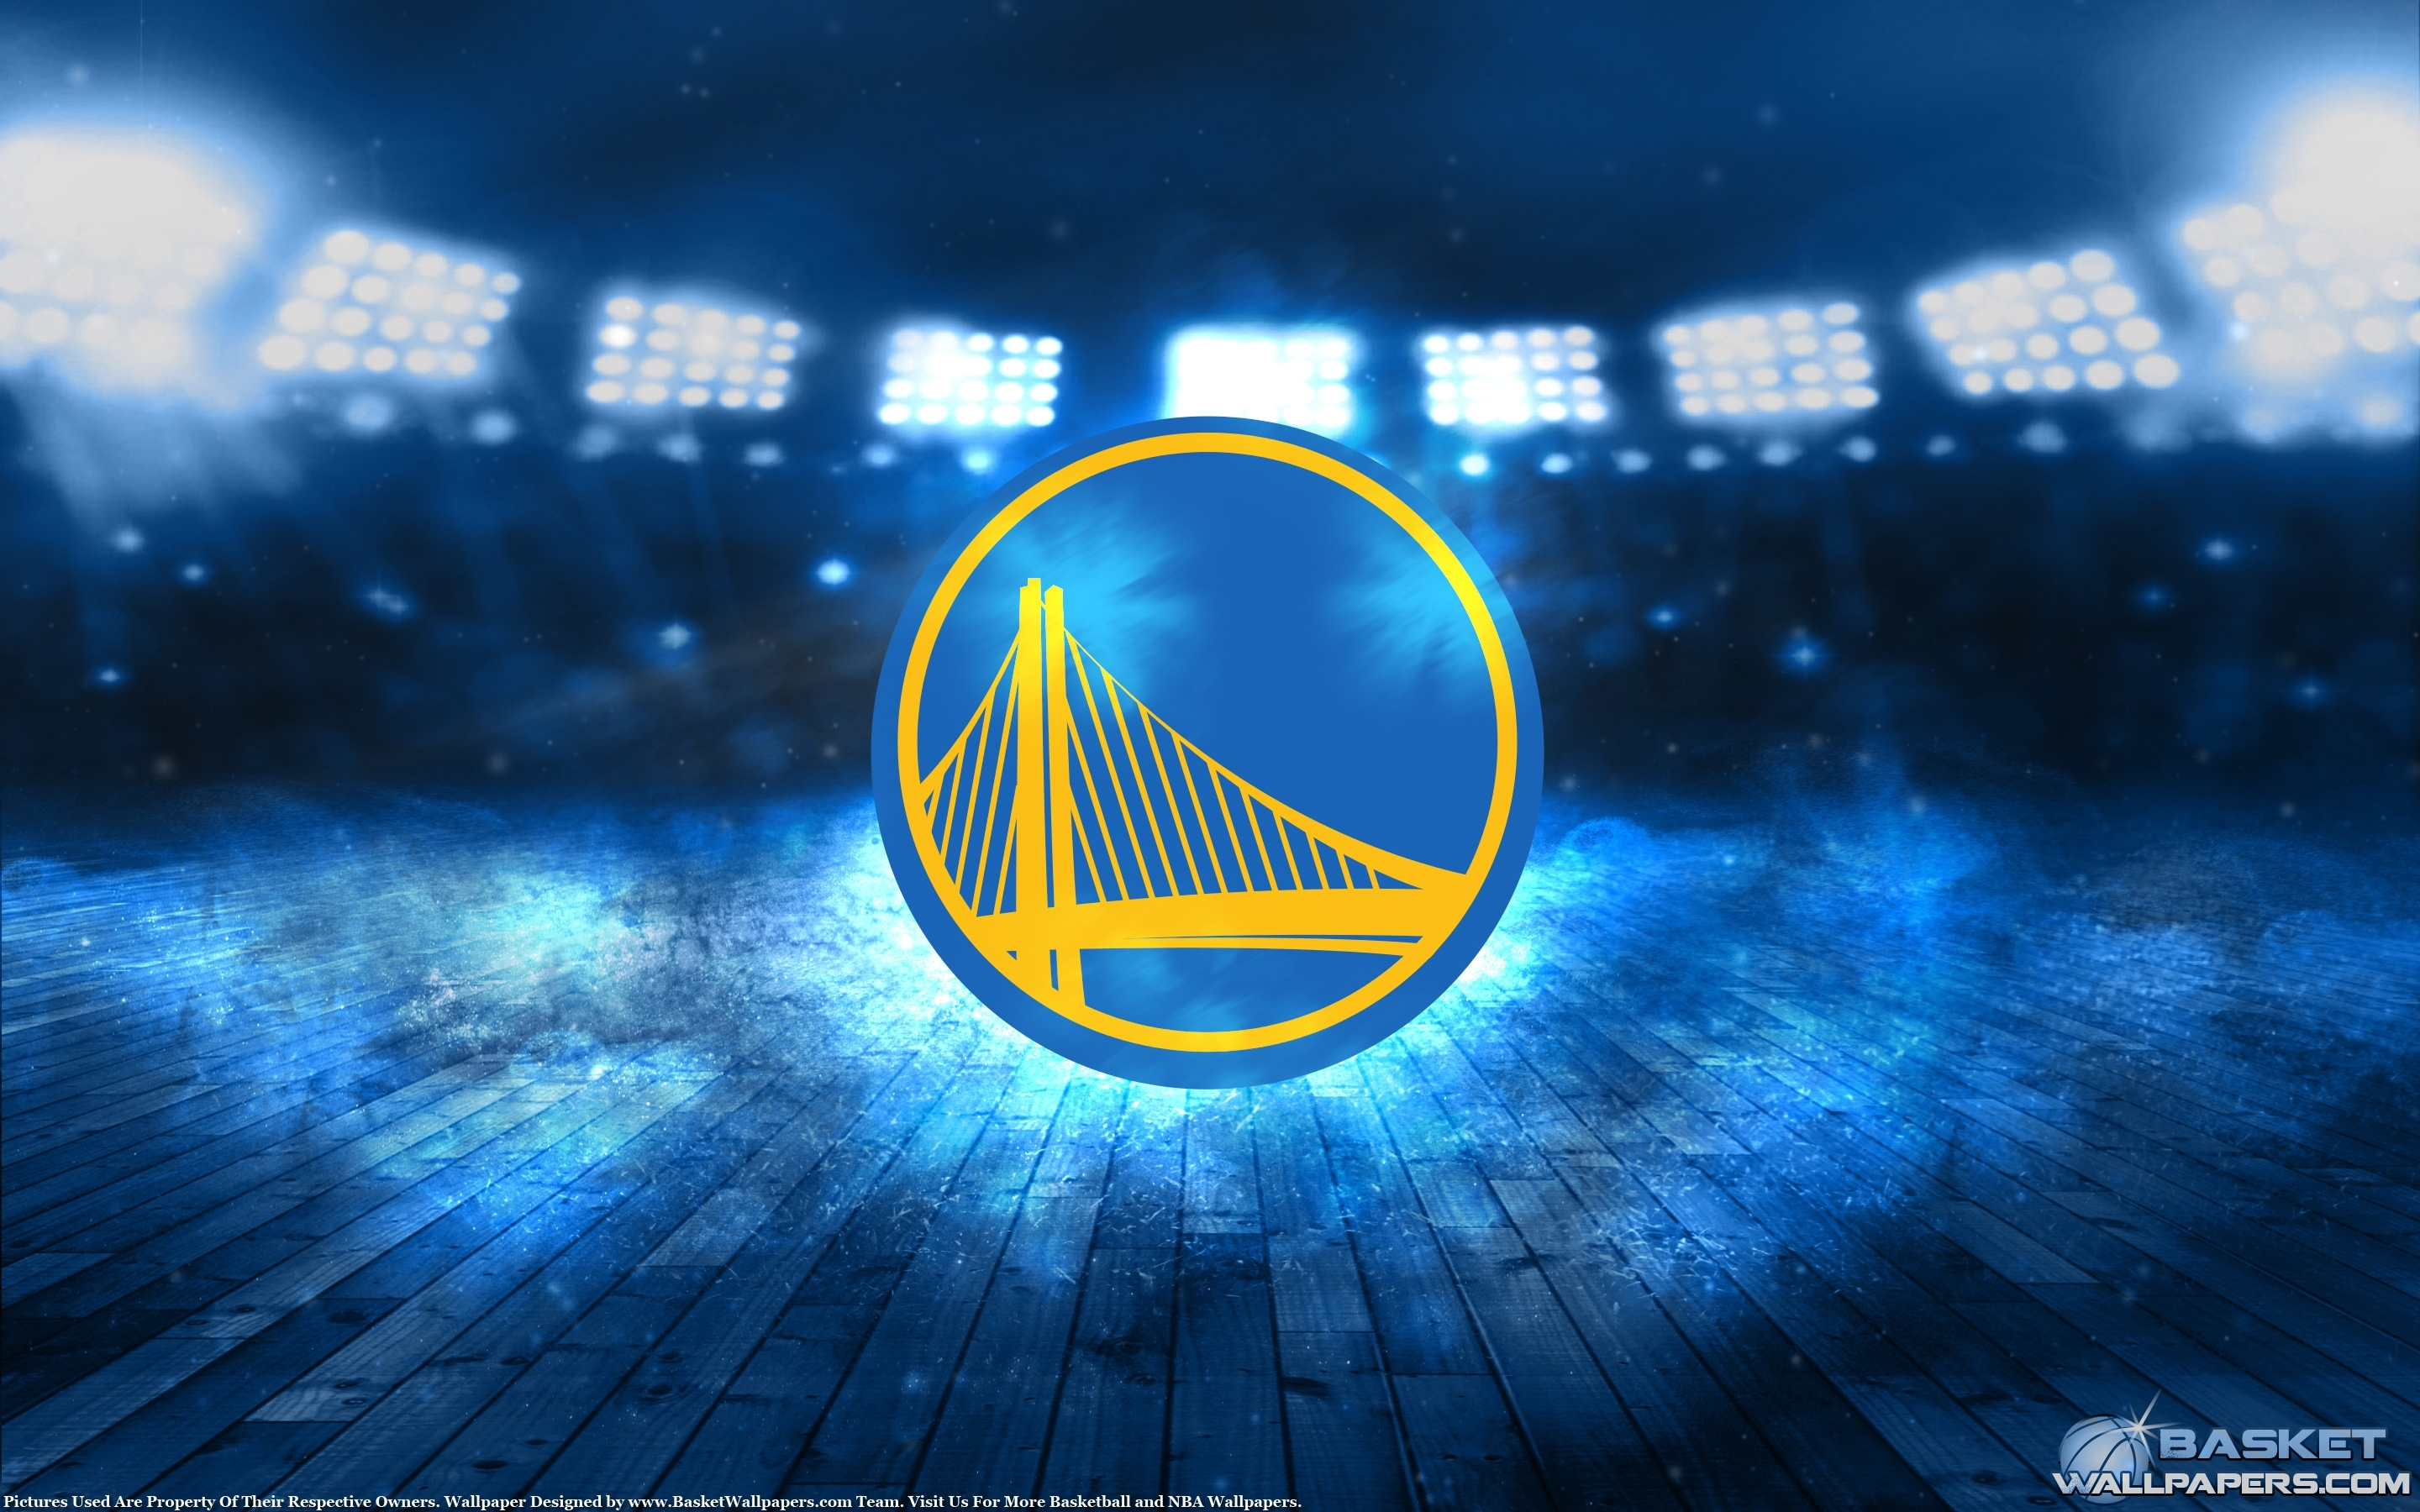 download golden state warriors hd wallpapers for free, b.scb wallpapers